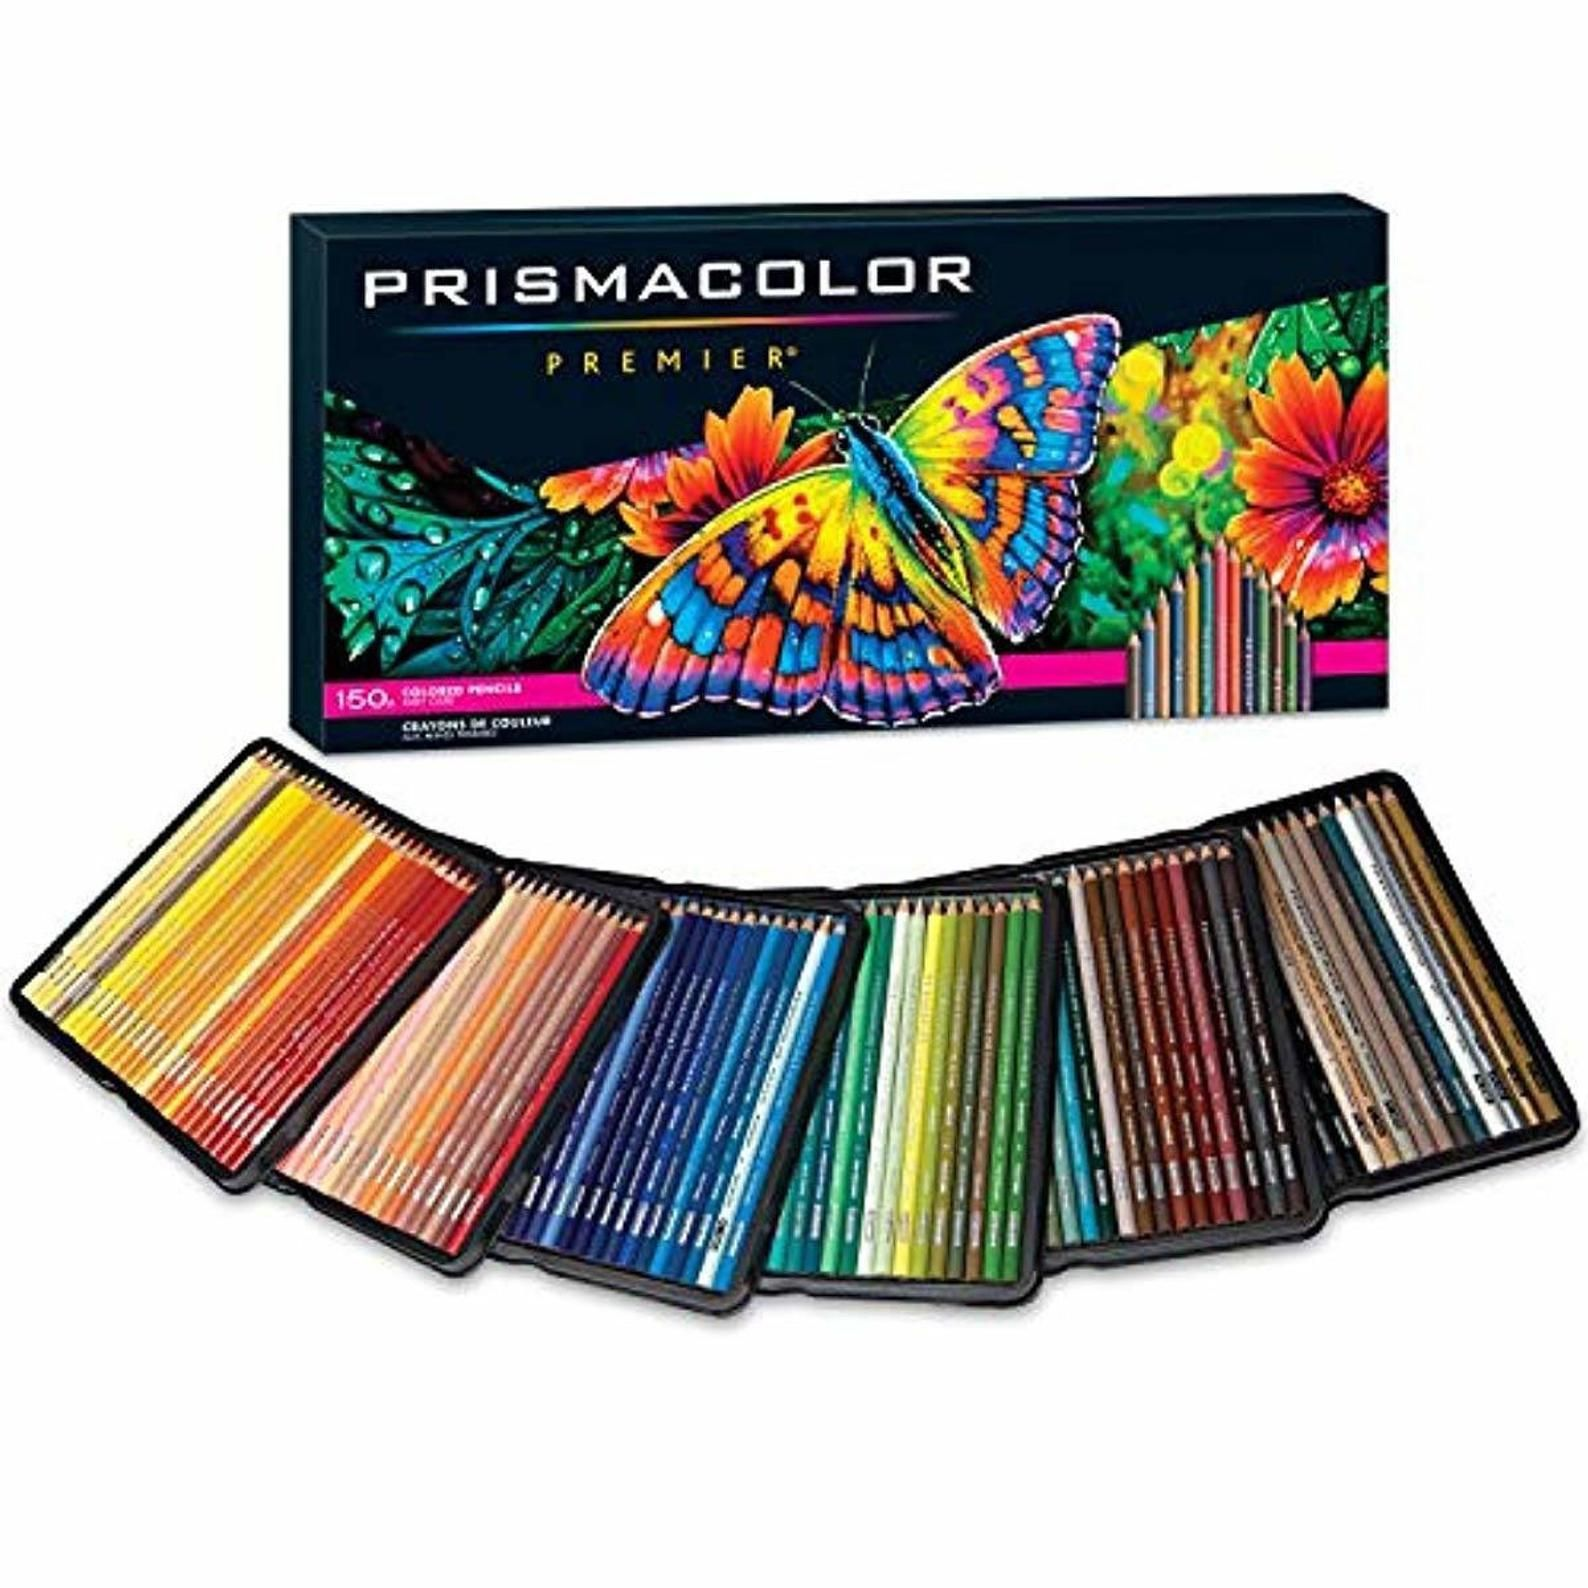 Prismacolor Premier Colored Pencils Soft Core 150 Pack